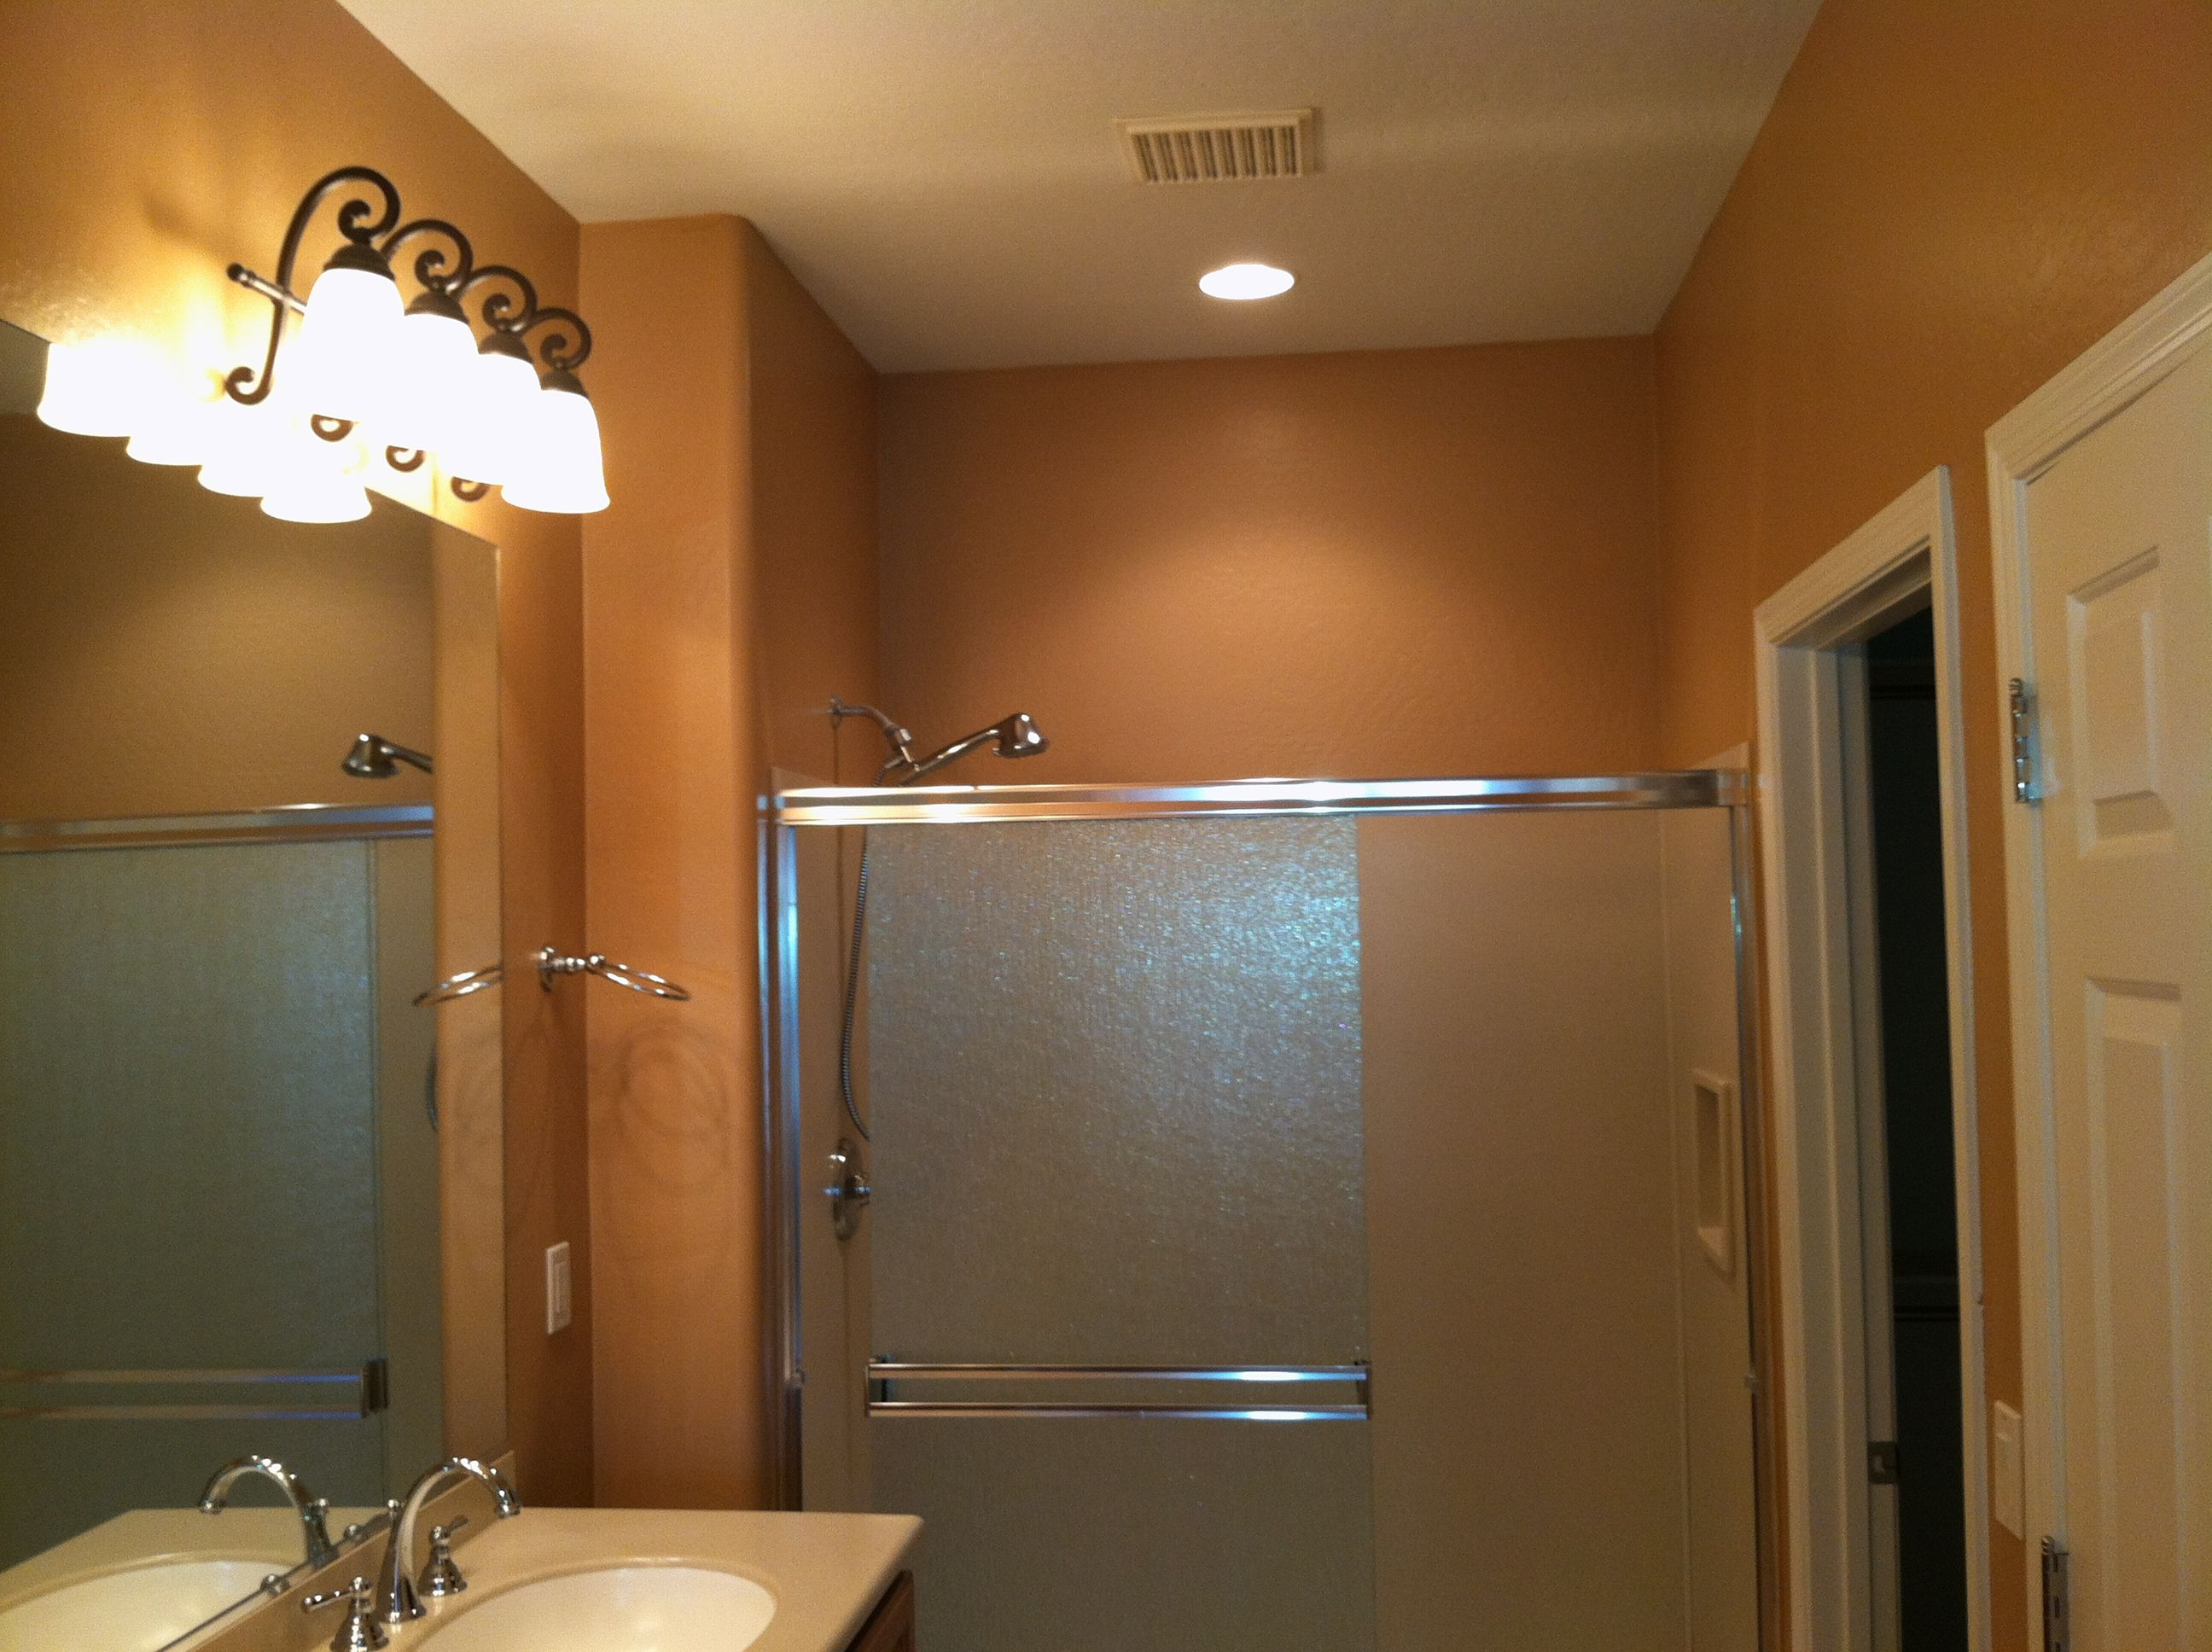 Interior Bathroom Dunn Edwards Color Saddle PAINT MY WALLS Pinterest